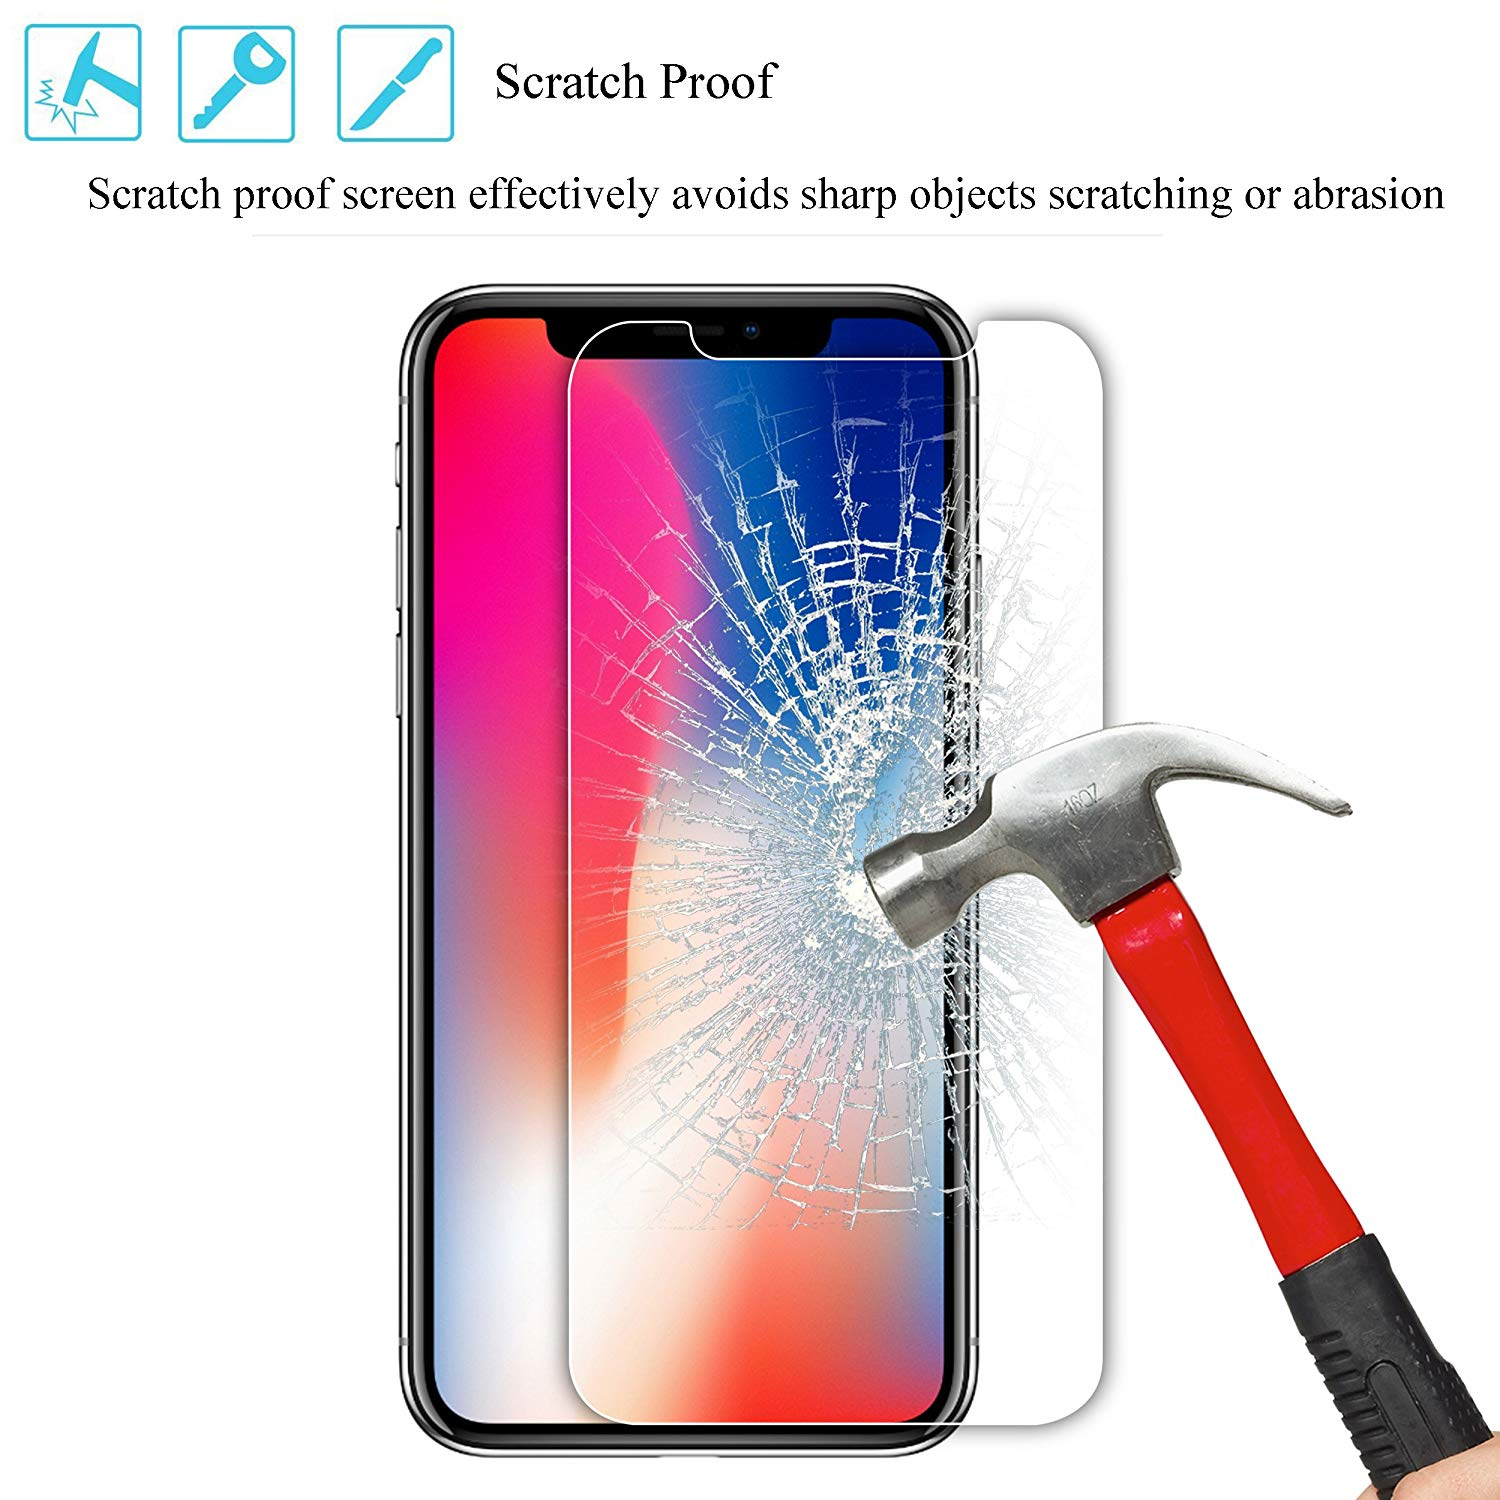 Glass For iPhone XS XR XS MAX Screen Protector Cover For iPhone 8 X 7 6 6S Plus 5 5S SE XS MAX XR XS 6.5 5.8 6.1 inch 2019 New